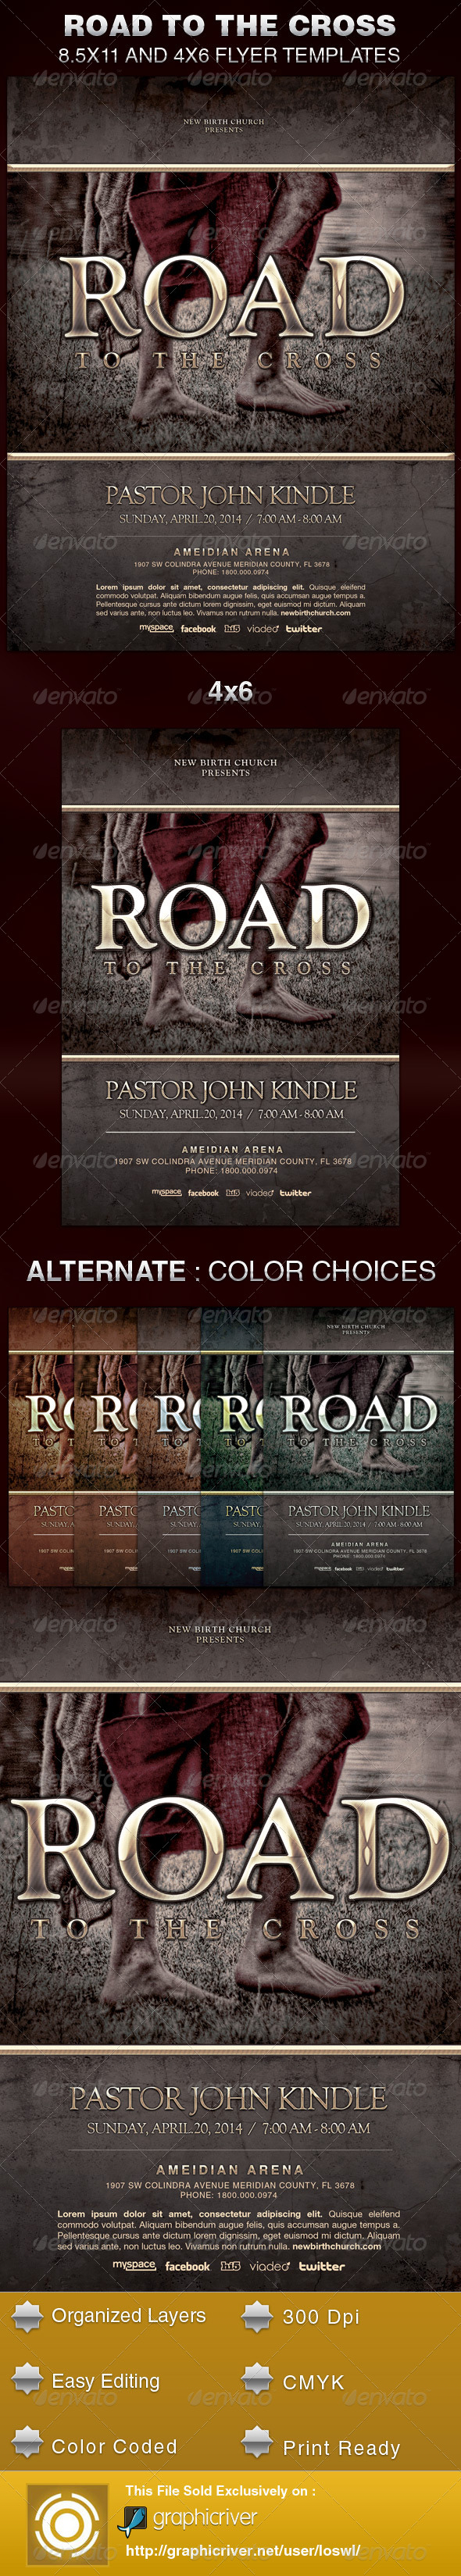 Road to the Cross Church Flyer Template - Church Flyers